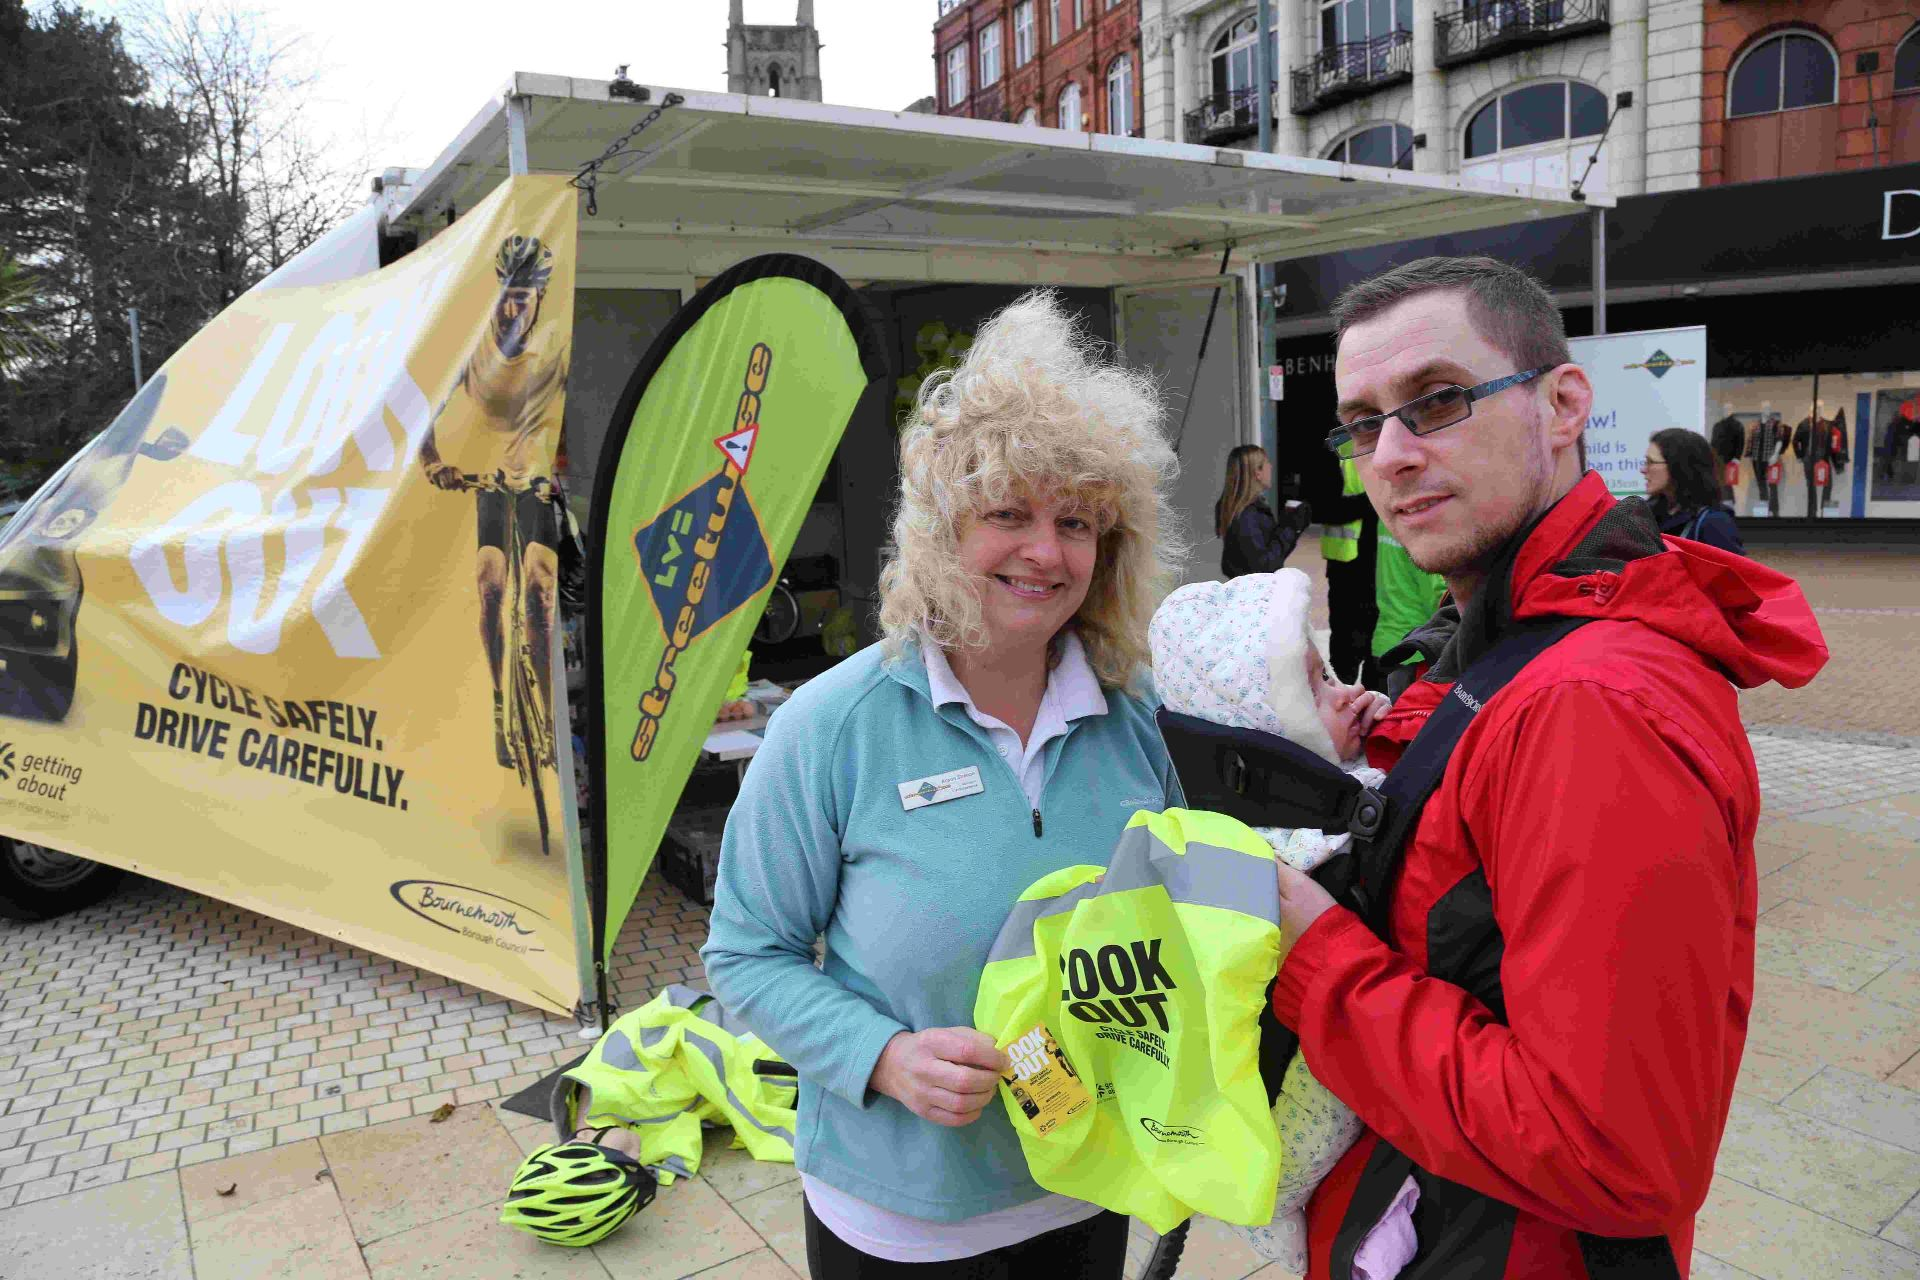 CYCLE wise: Alison Shelton from LV=Streetwise talks to Evan Kitson during the Lookout event held in Bournemouth Square to raise awareness for cyclists and motorists